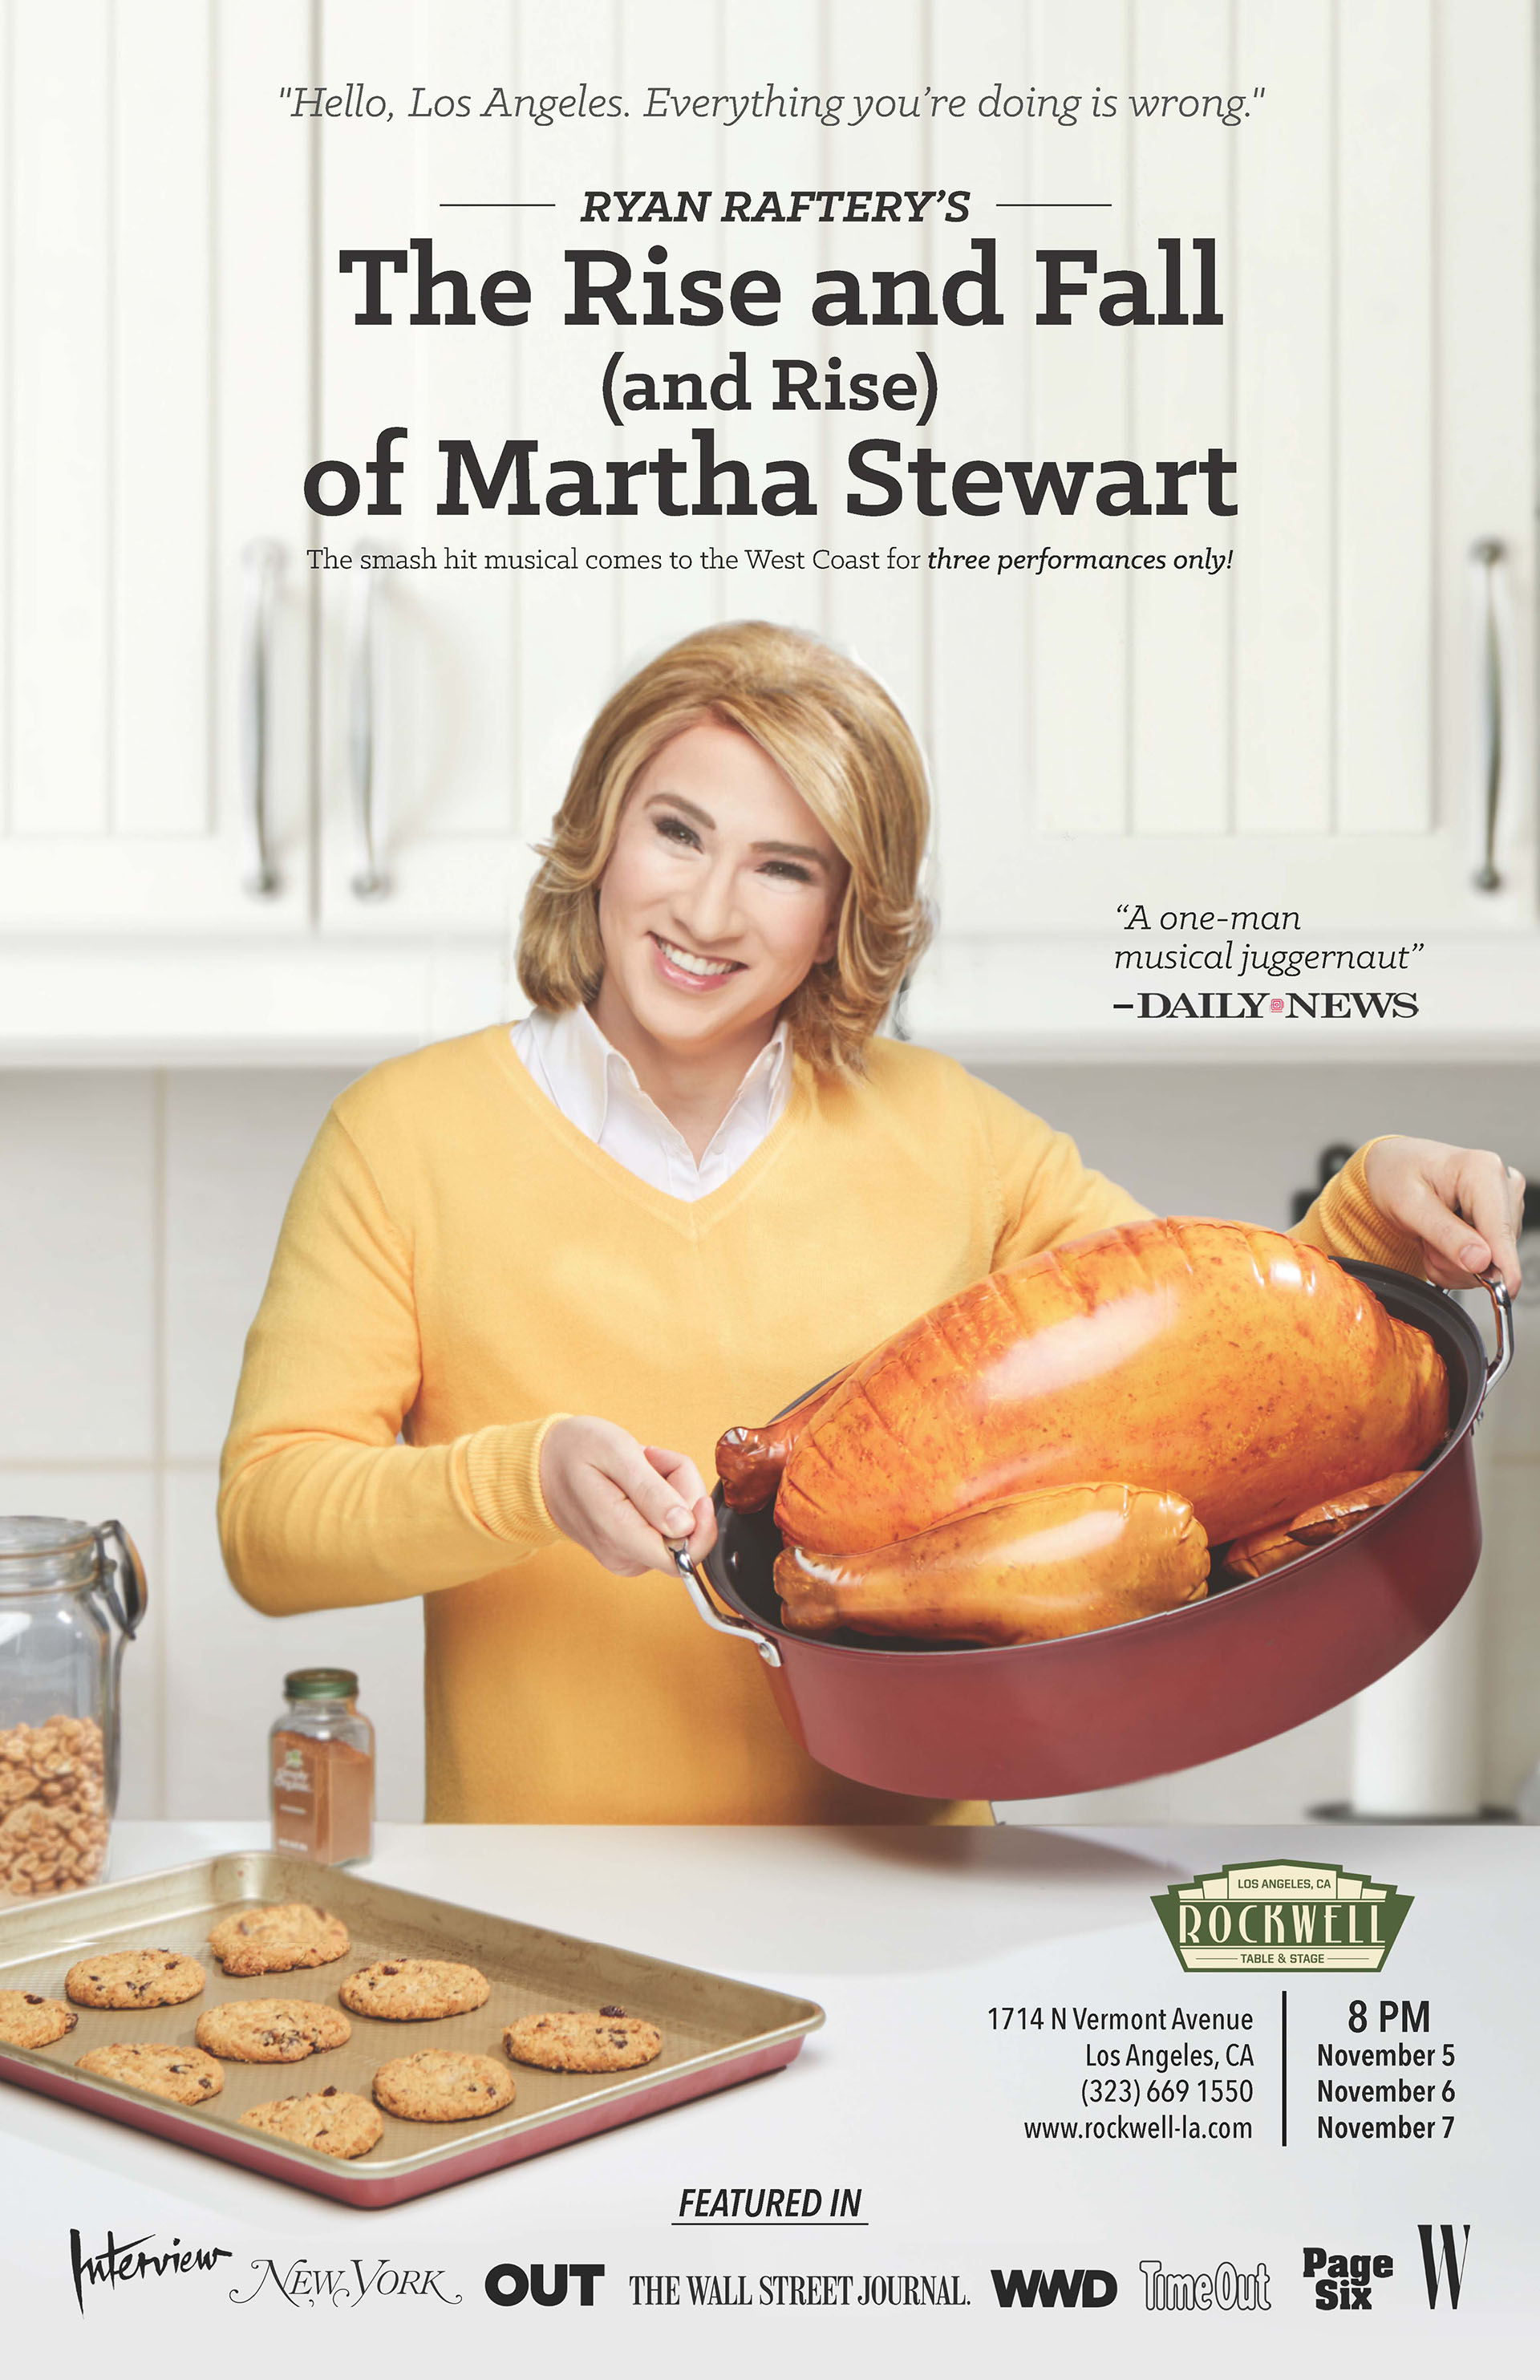 The Rise and Fall (and Rise) of Martha Stewart